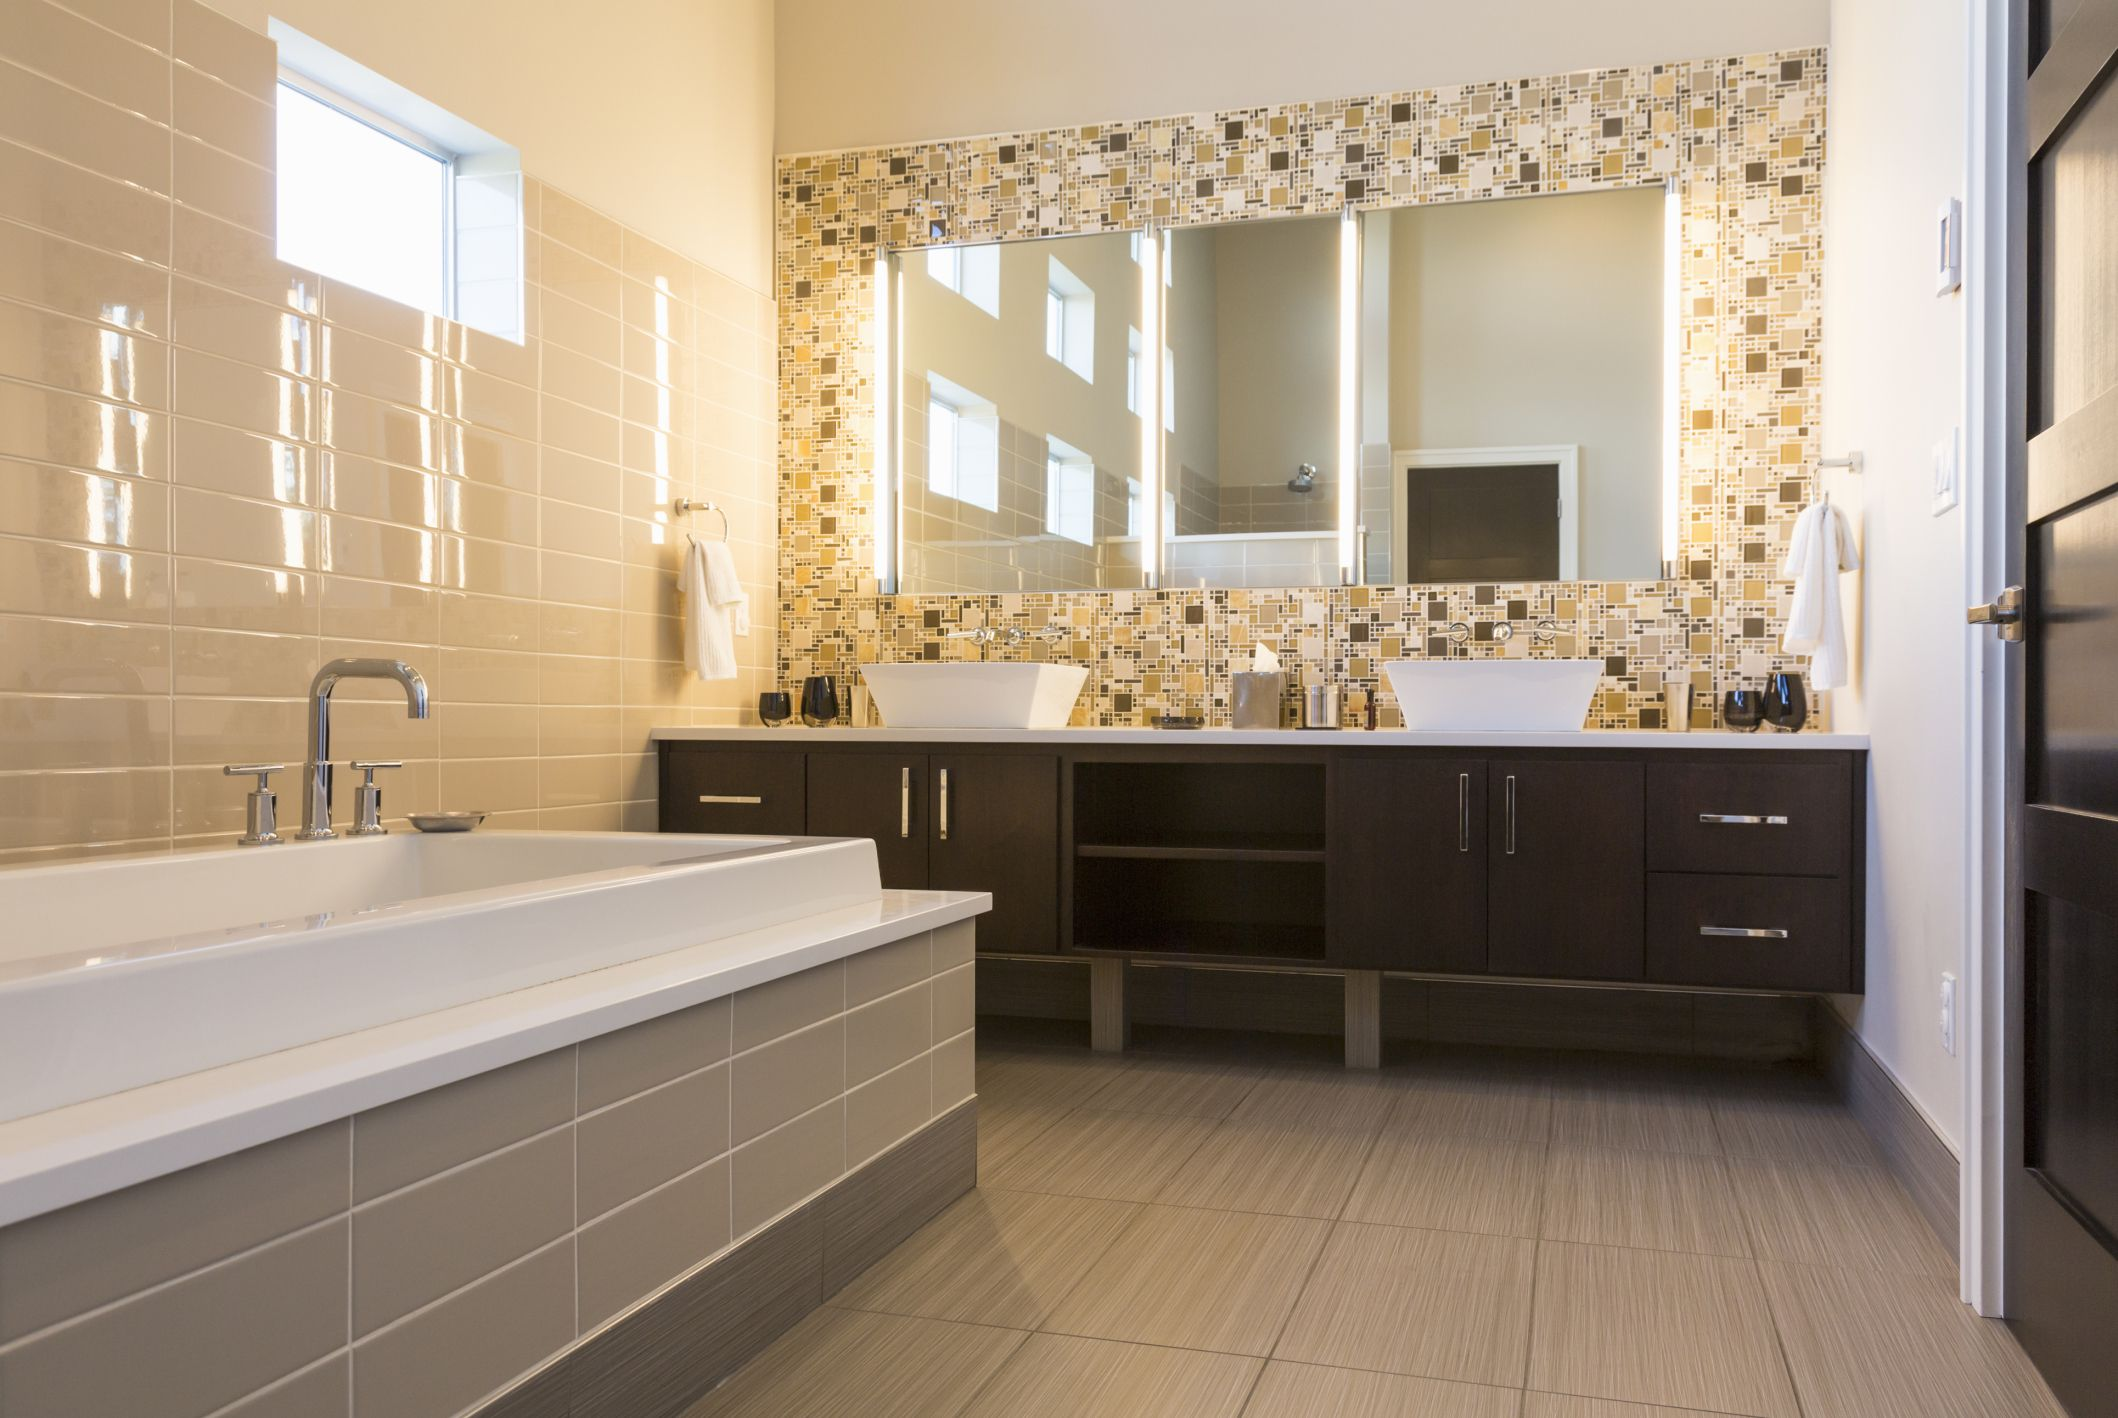 How long it takes to remodel a bathroom How to remodel a bathroom